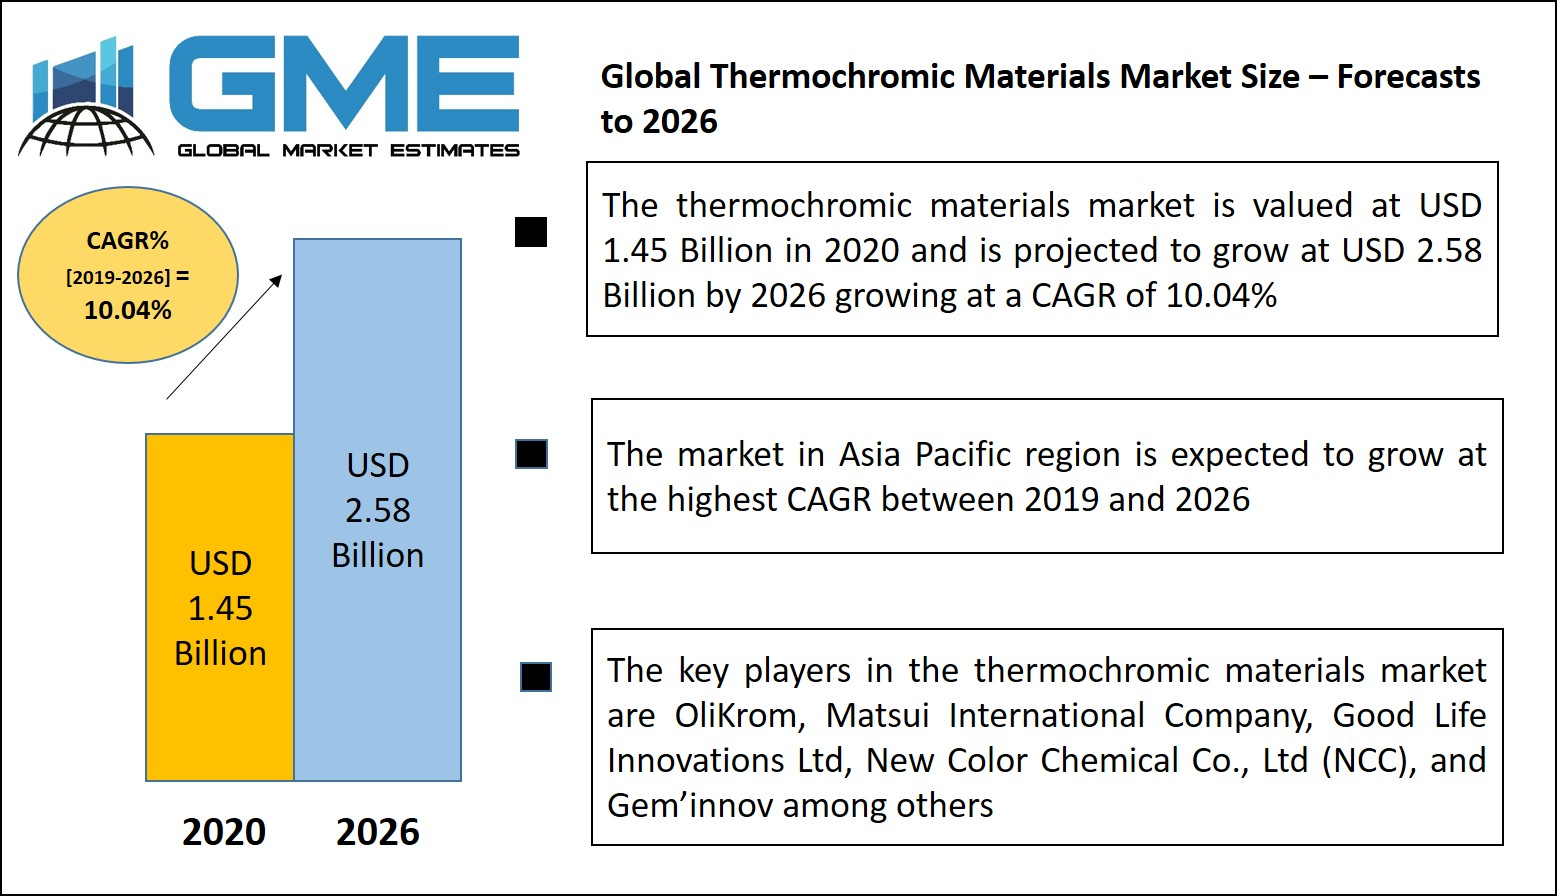 Global Thermochromic Materials Market